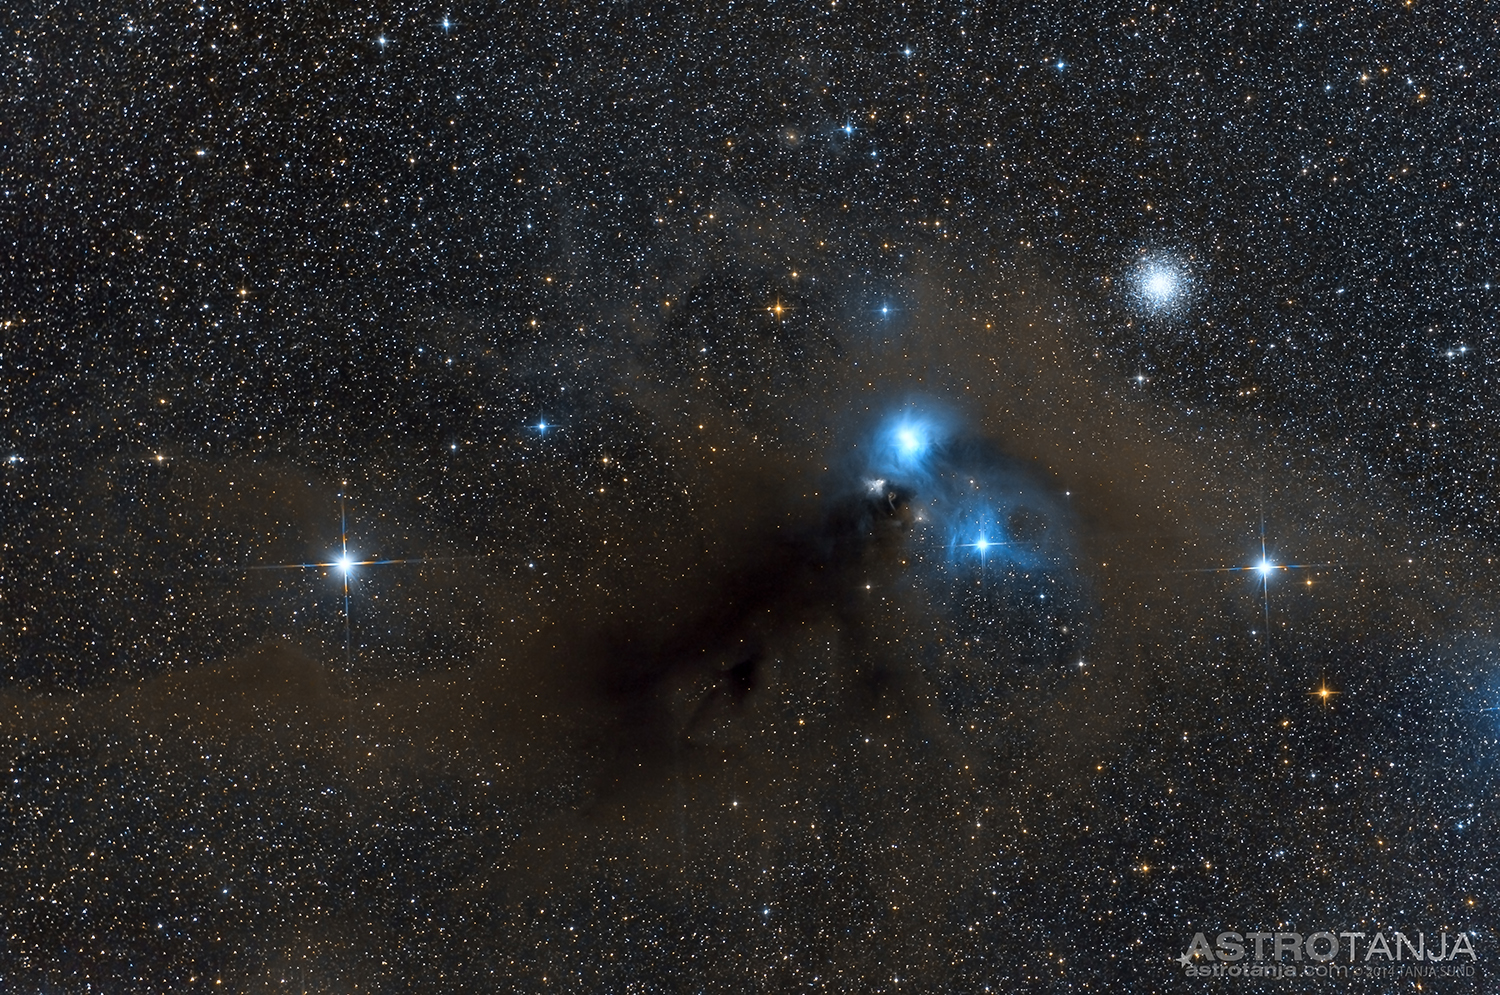 Dark reflection nebula